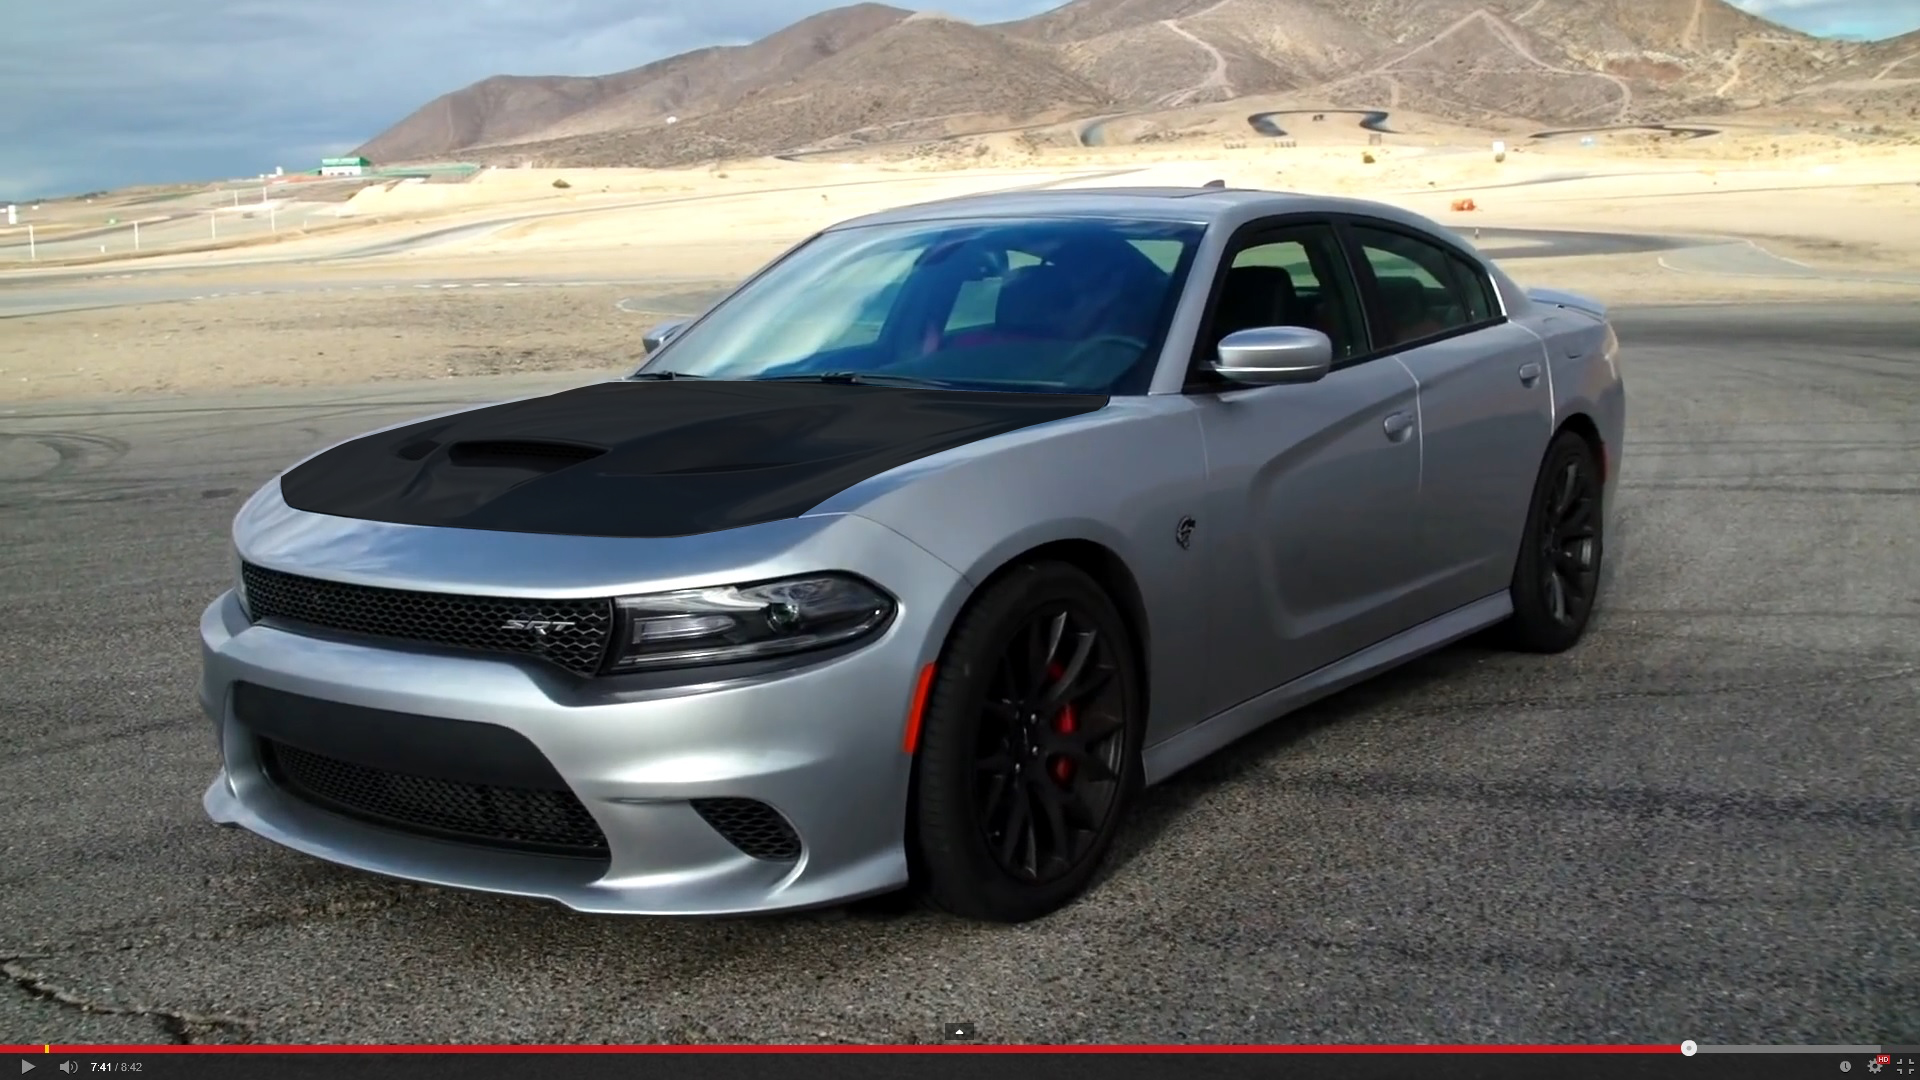 Dodge Charger Forum >> Dodge Charger Srt Hellcat Forum Car Insurance Info